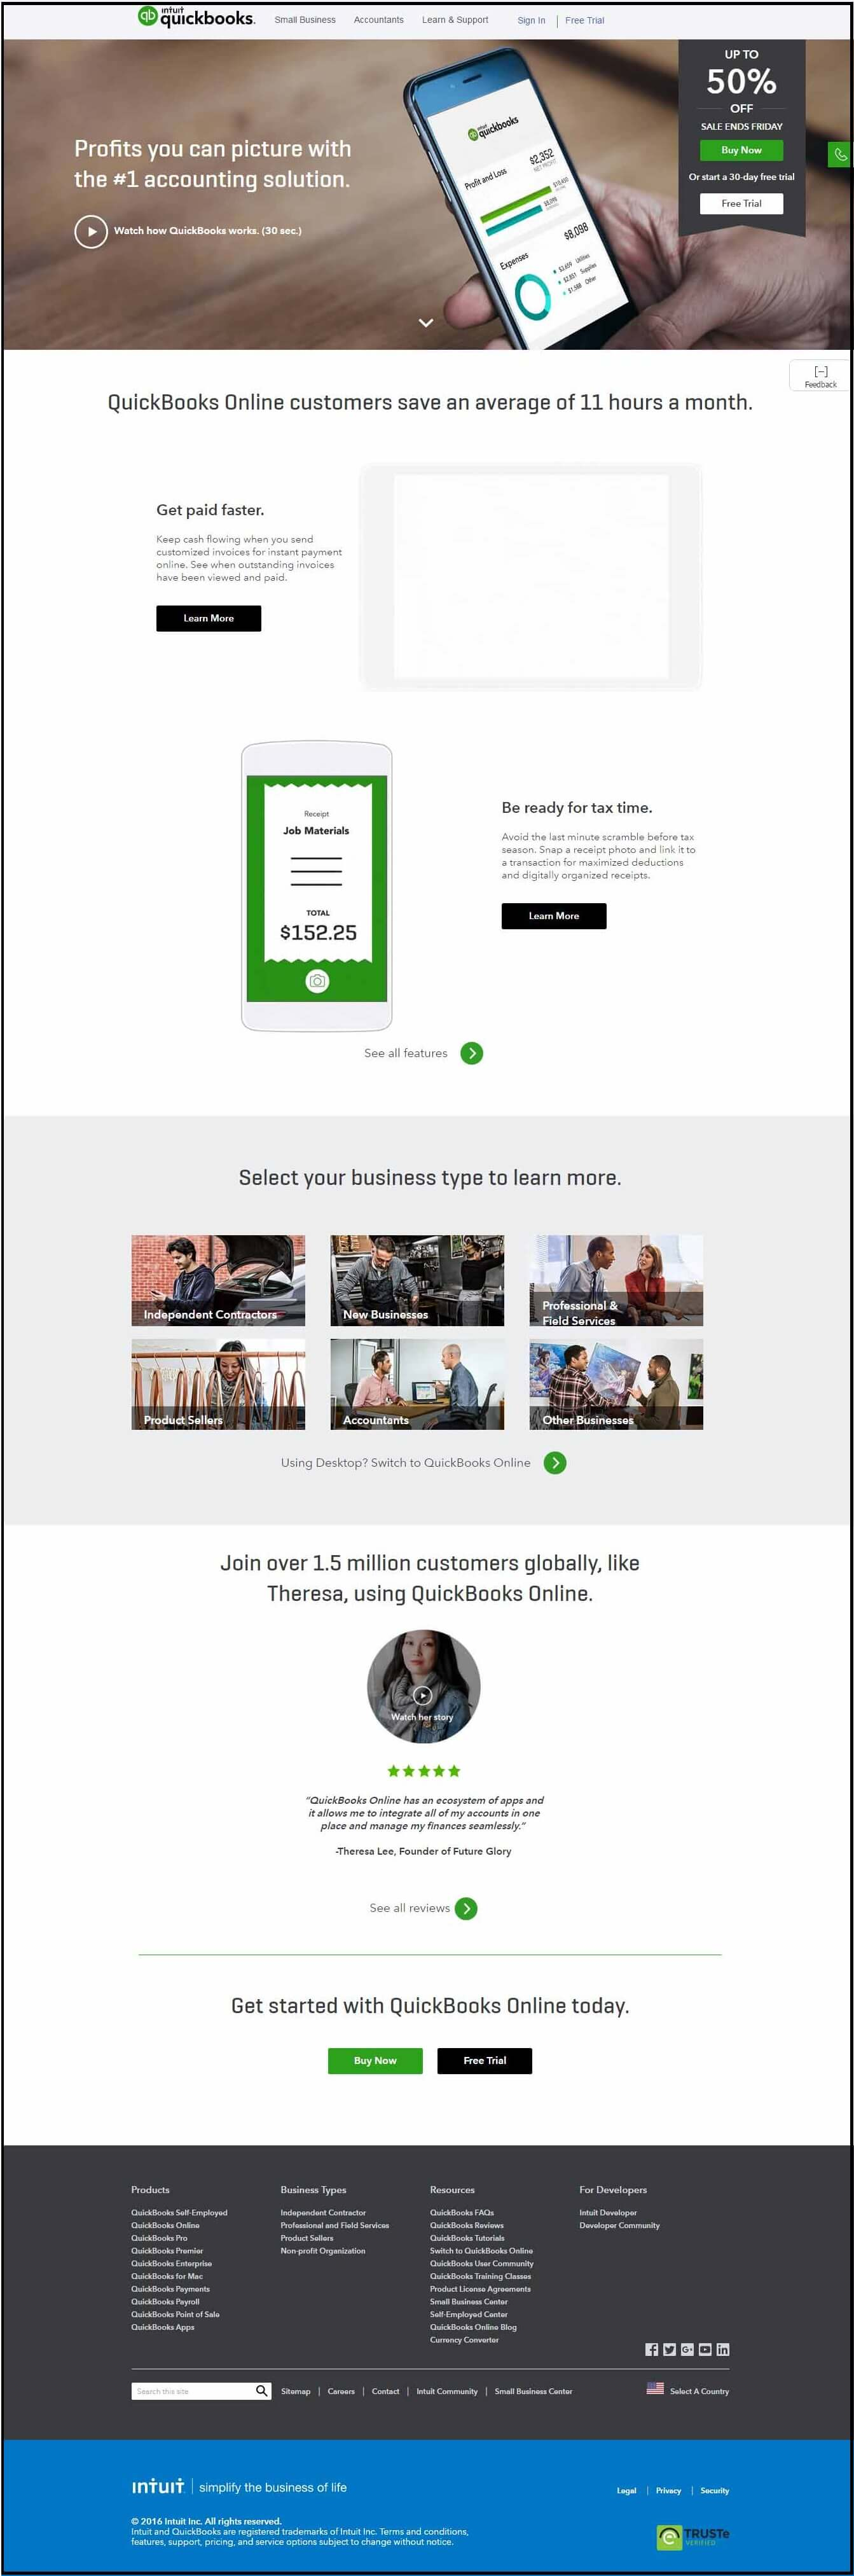 Intuit Landing Page Components